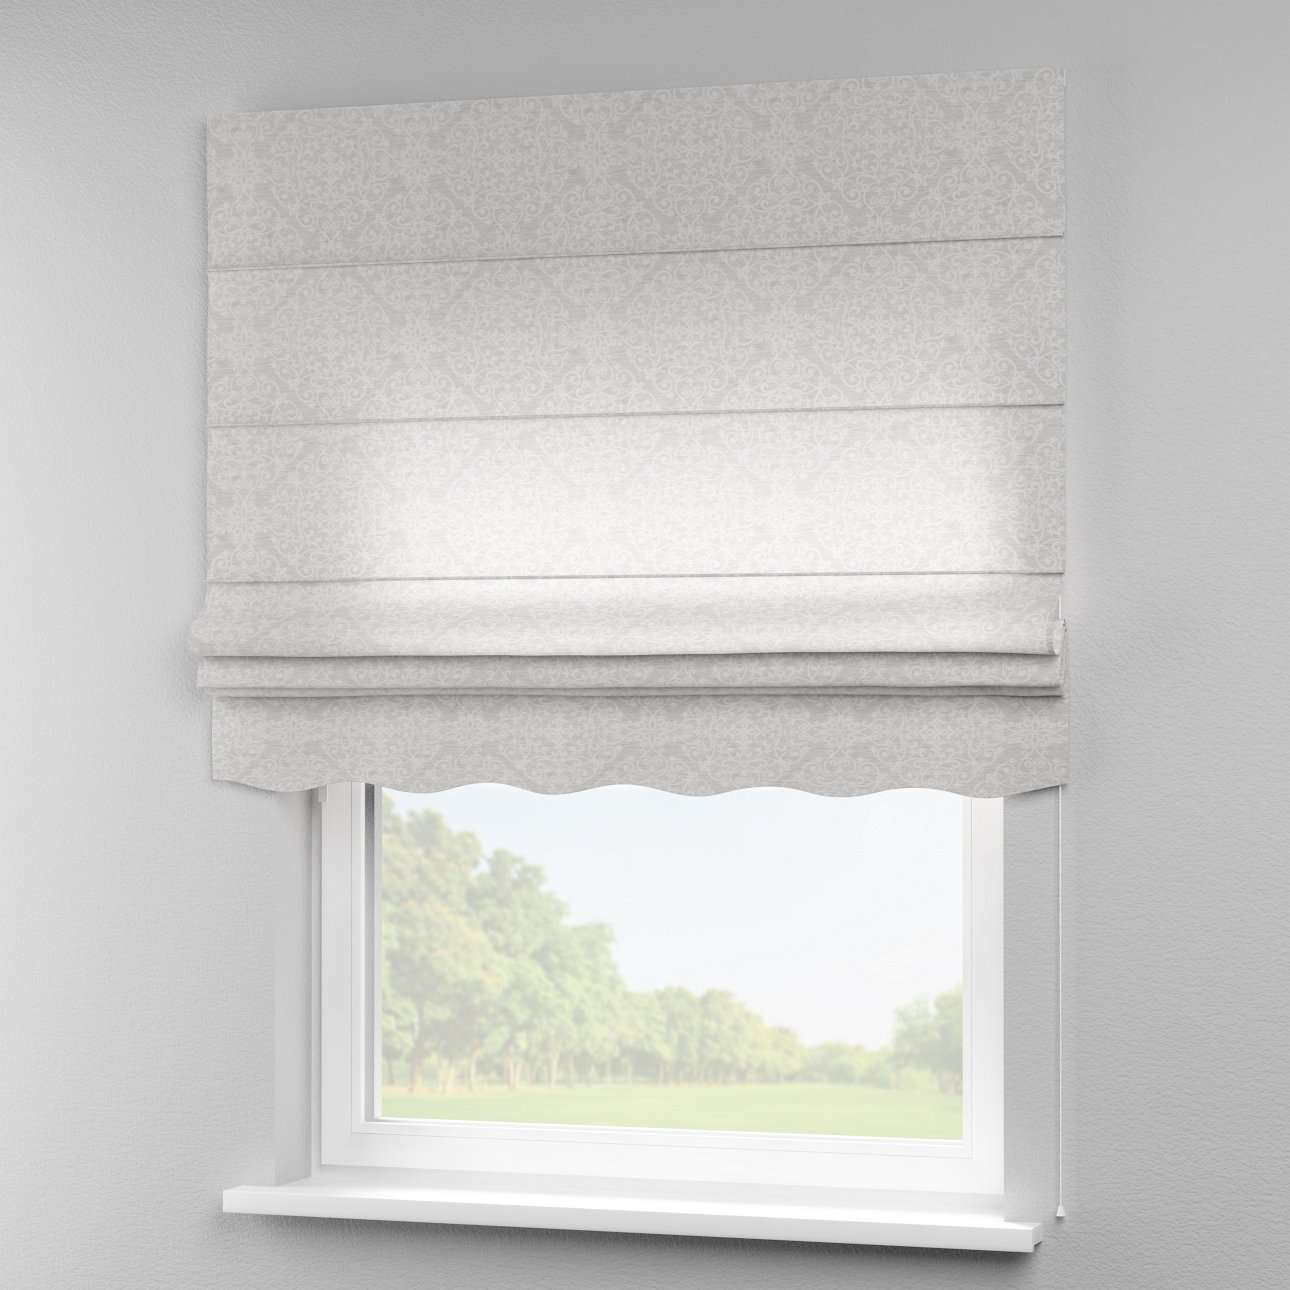 Florence roman blind  80 x 170 cm (31.5 x 67 inch) in collection Venice, fabric: 140-49